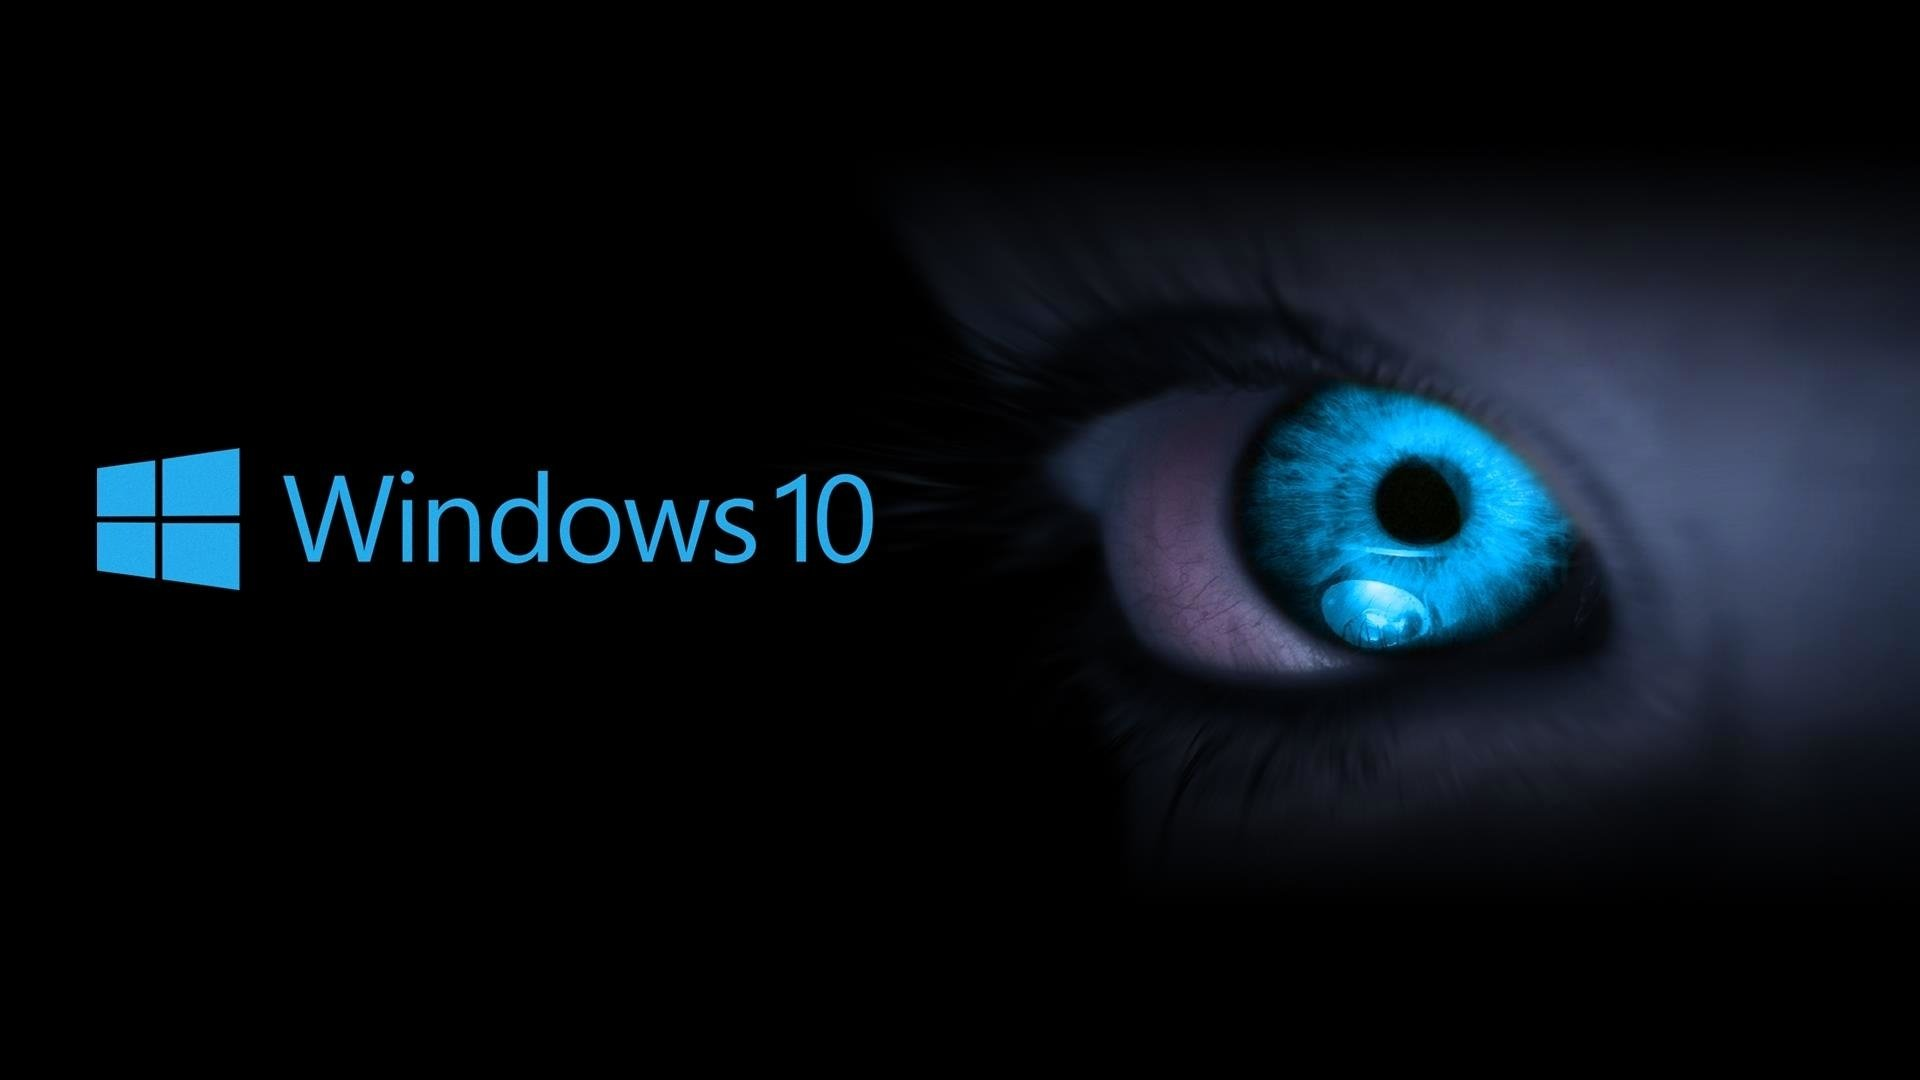 703 Windows HD Wallpapers | Background Images - Wallpaper Abyss